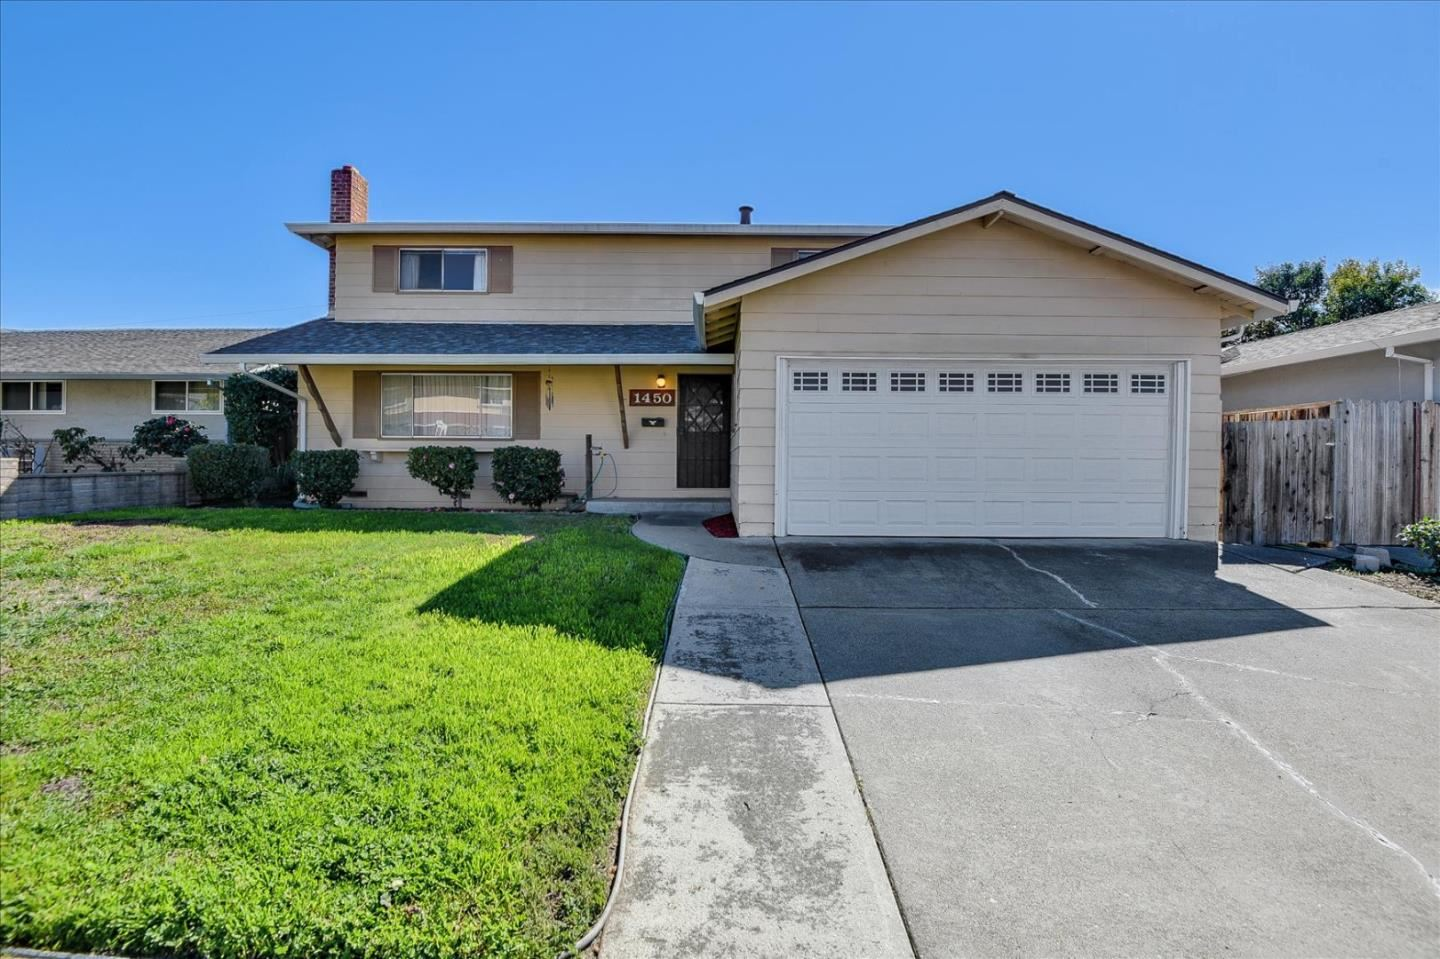 Photo for 1450 Olympic DR, MILPITAS, CA 95035 (MLS # ML81830793)